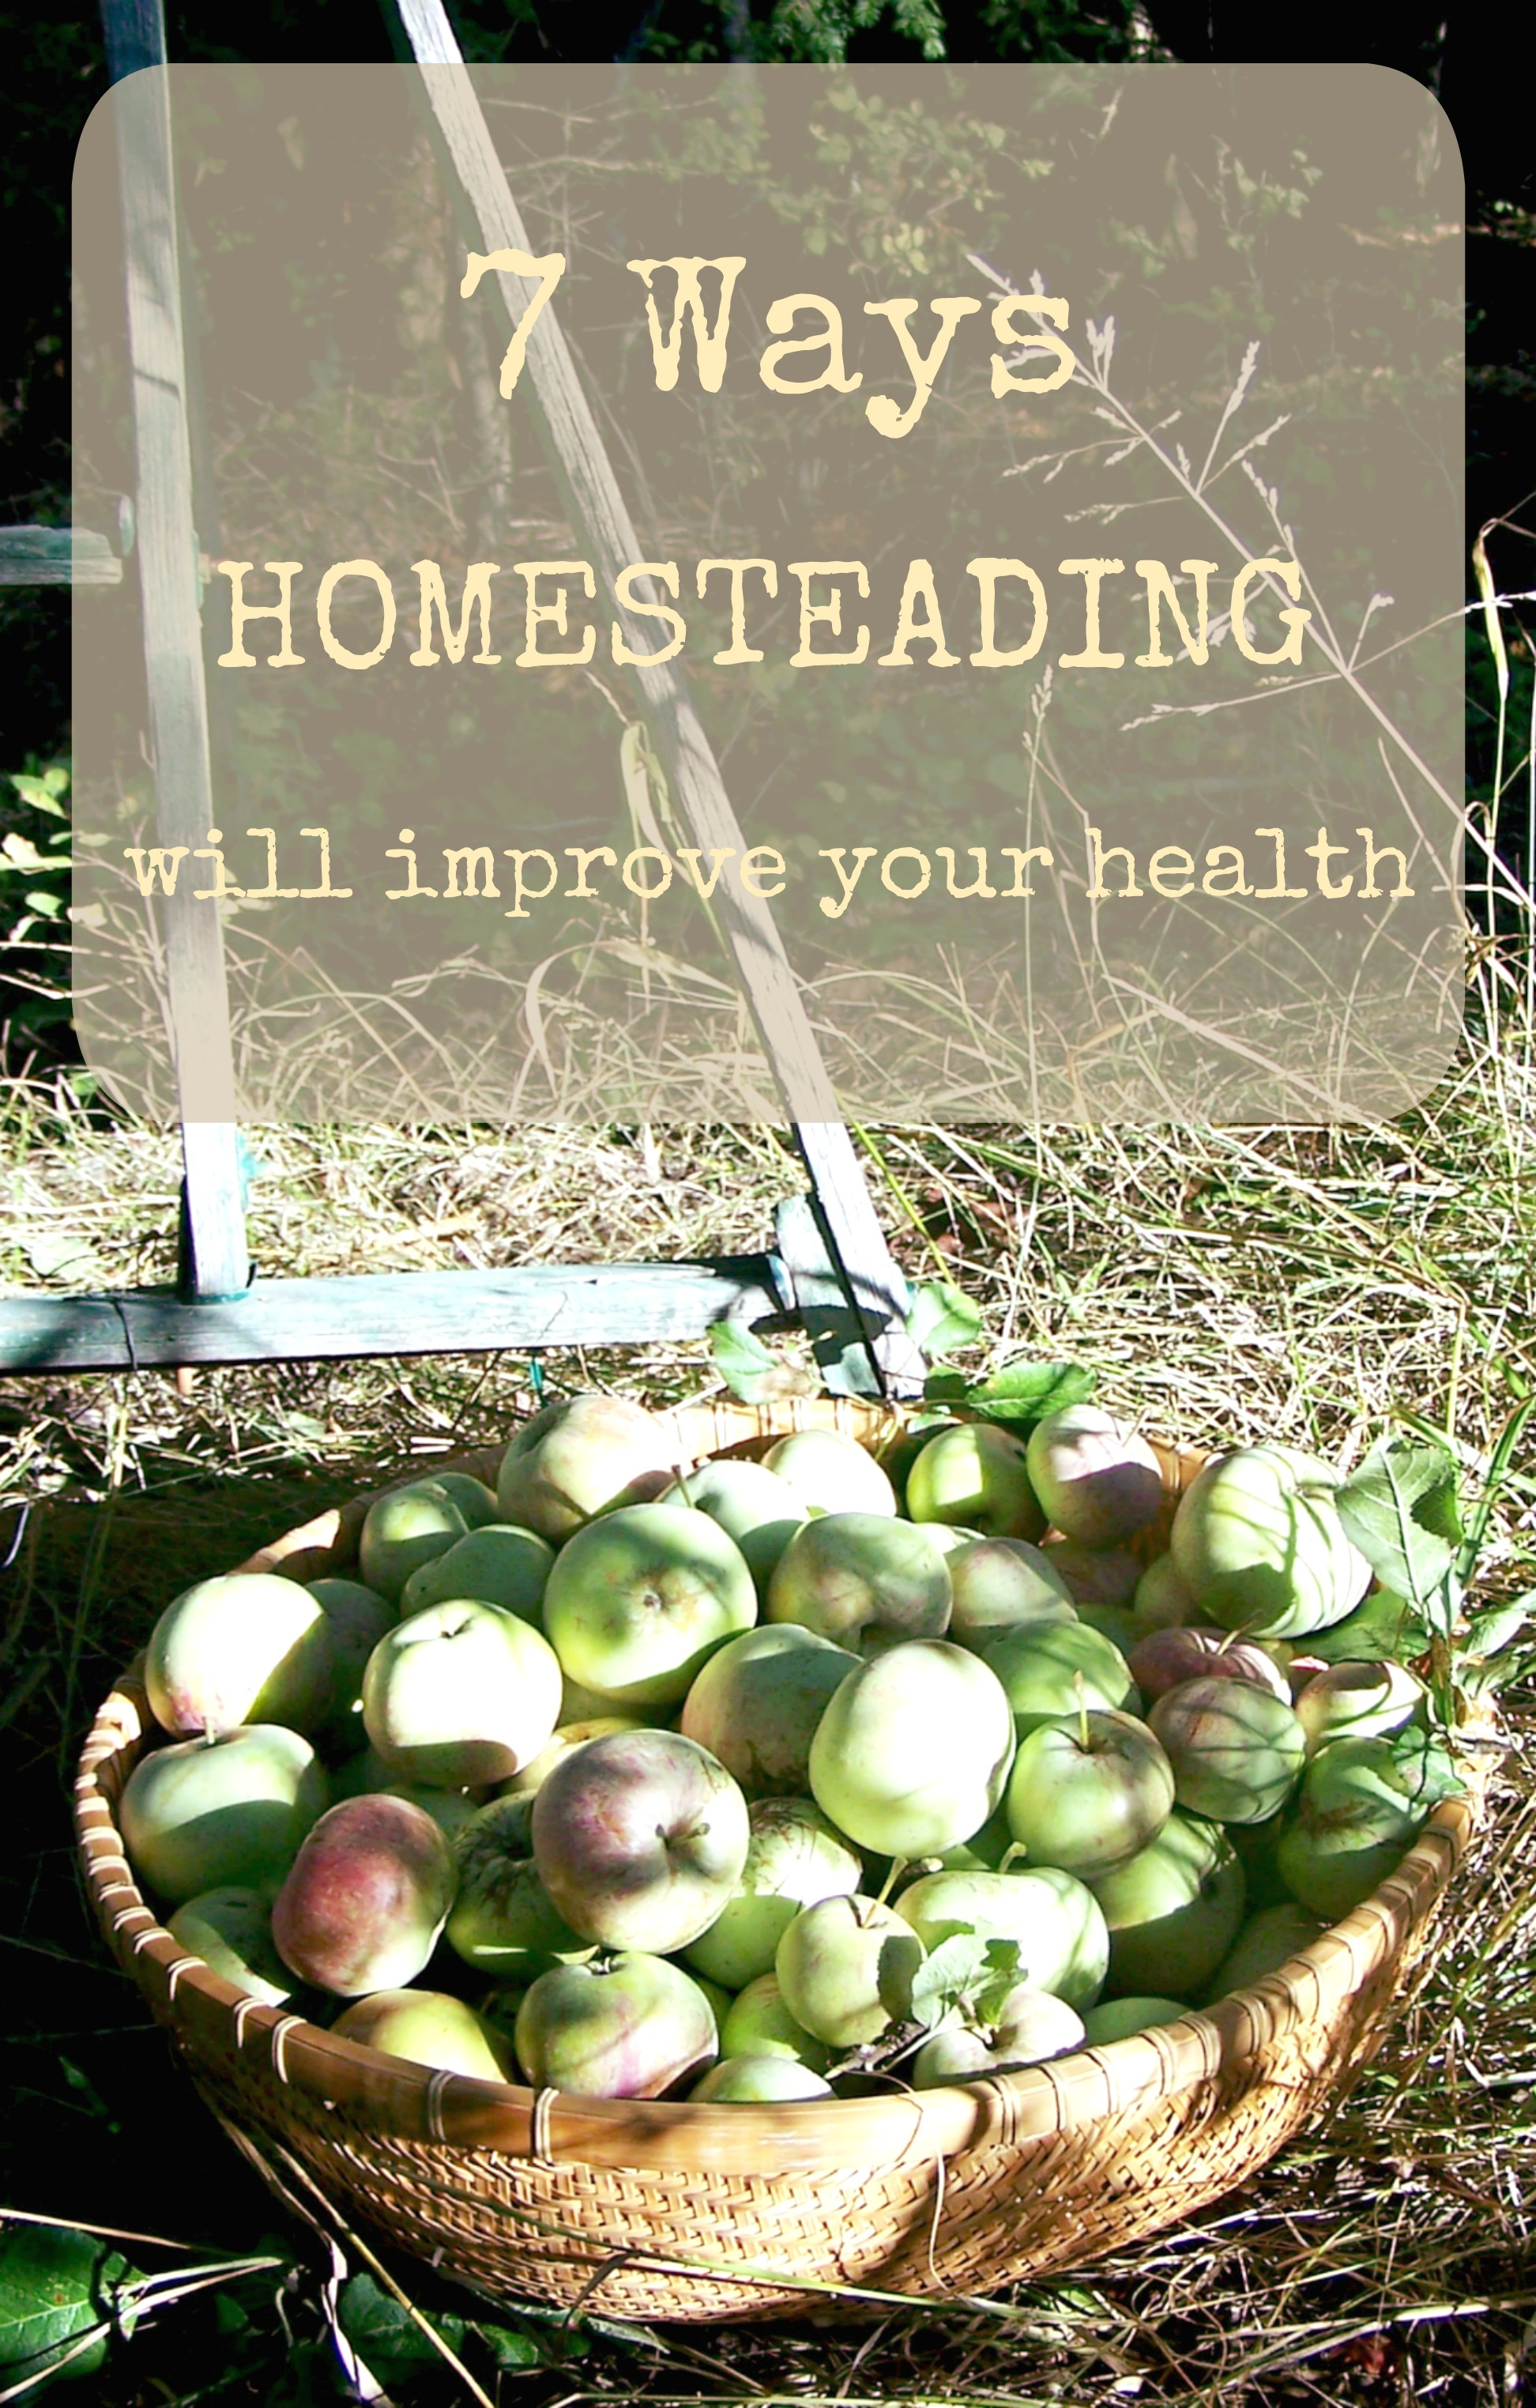 Are you experiencing symptoms that alarm you? Homesteading offers change in many areas of life! Come learn about 7 benfits and reasons to return to natural living!